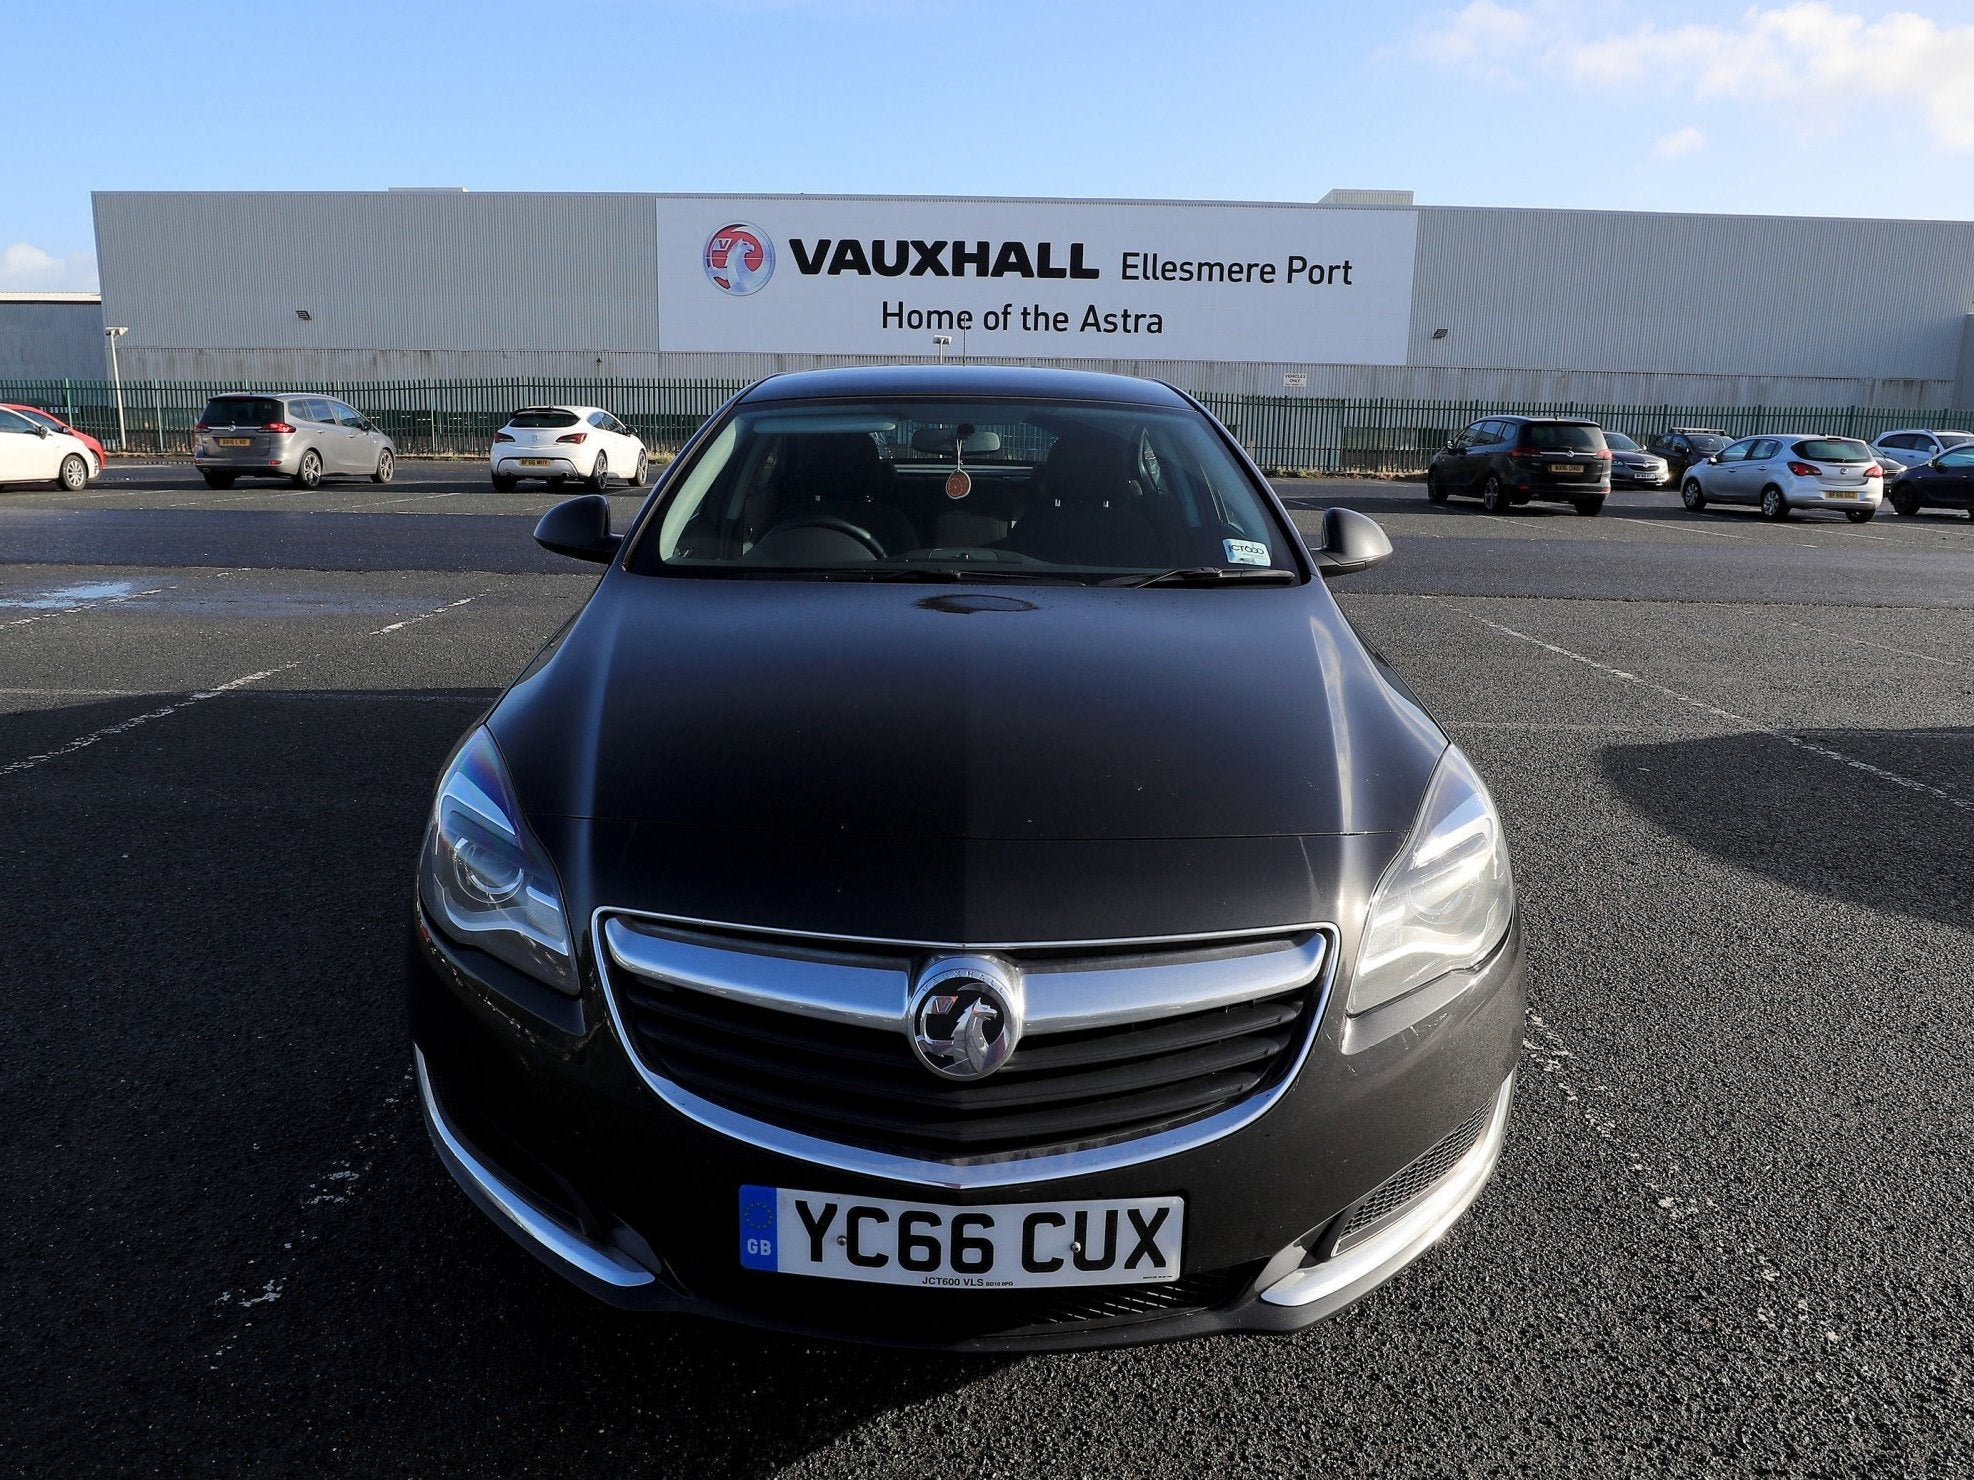 Vauxhall - latest news, breaking stories and comment - The Independent